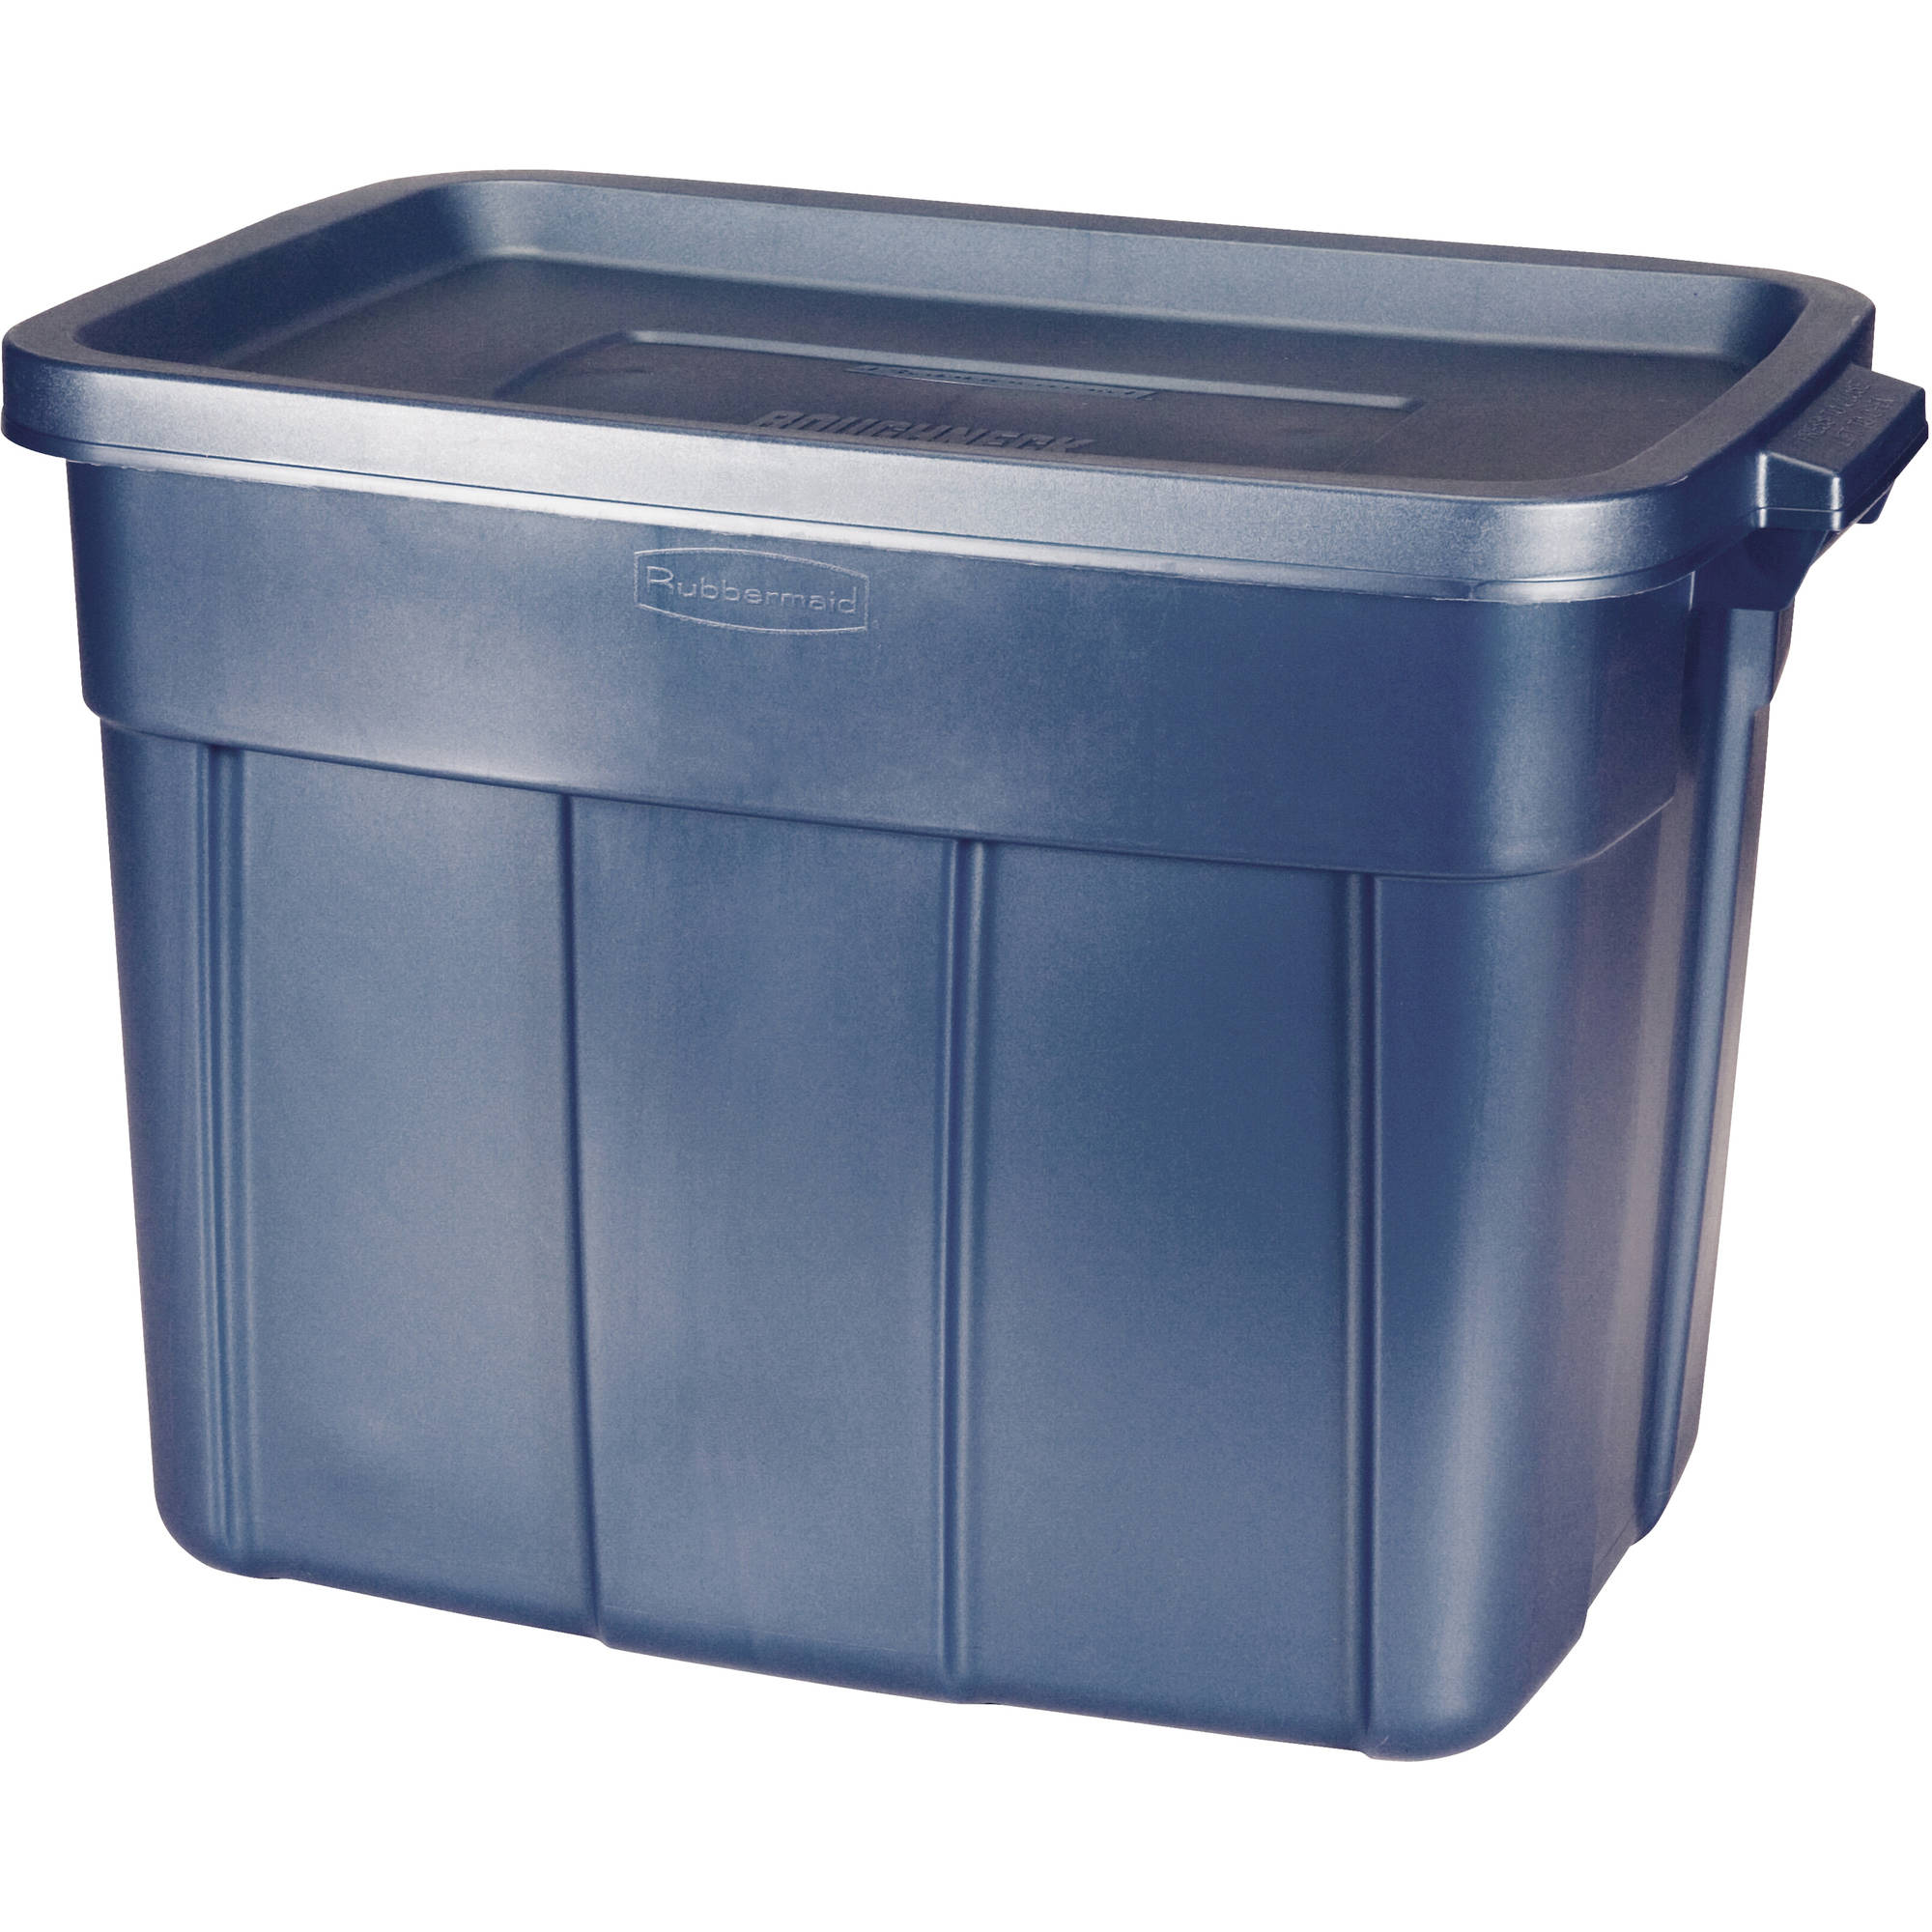 Rubbermaid Roughneck Storage Tote Bins, 72 Qt (18 Gal), Blue, Set Of 12 |  EBay